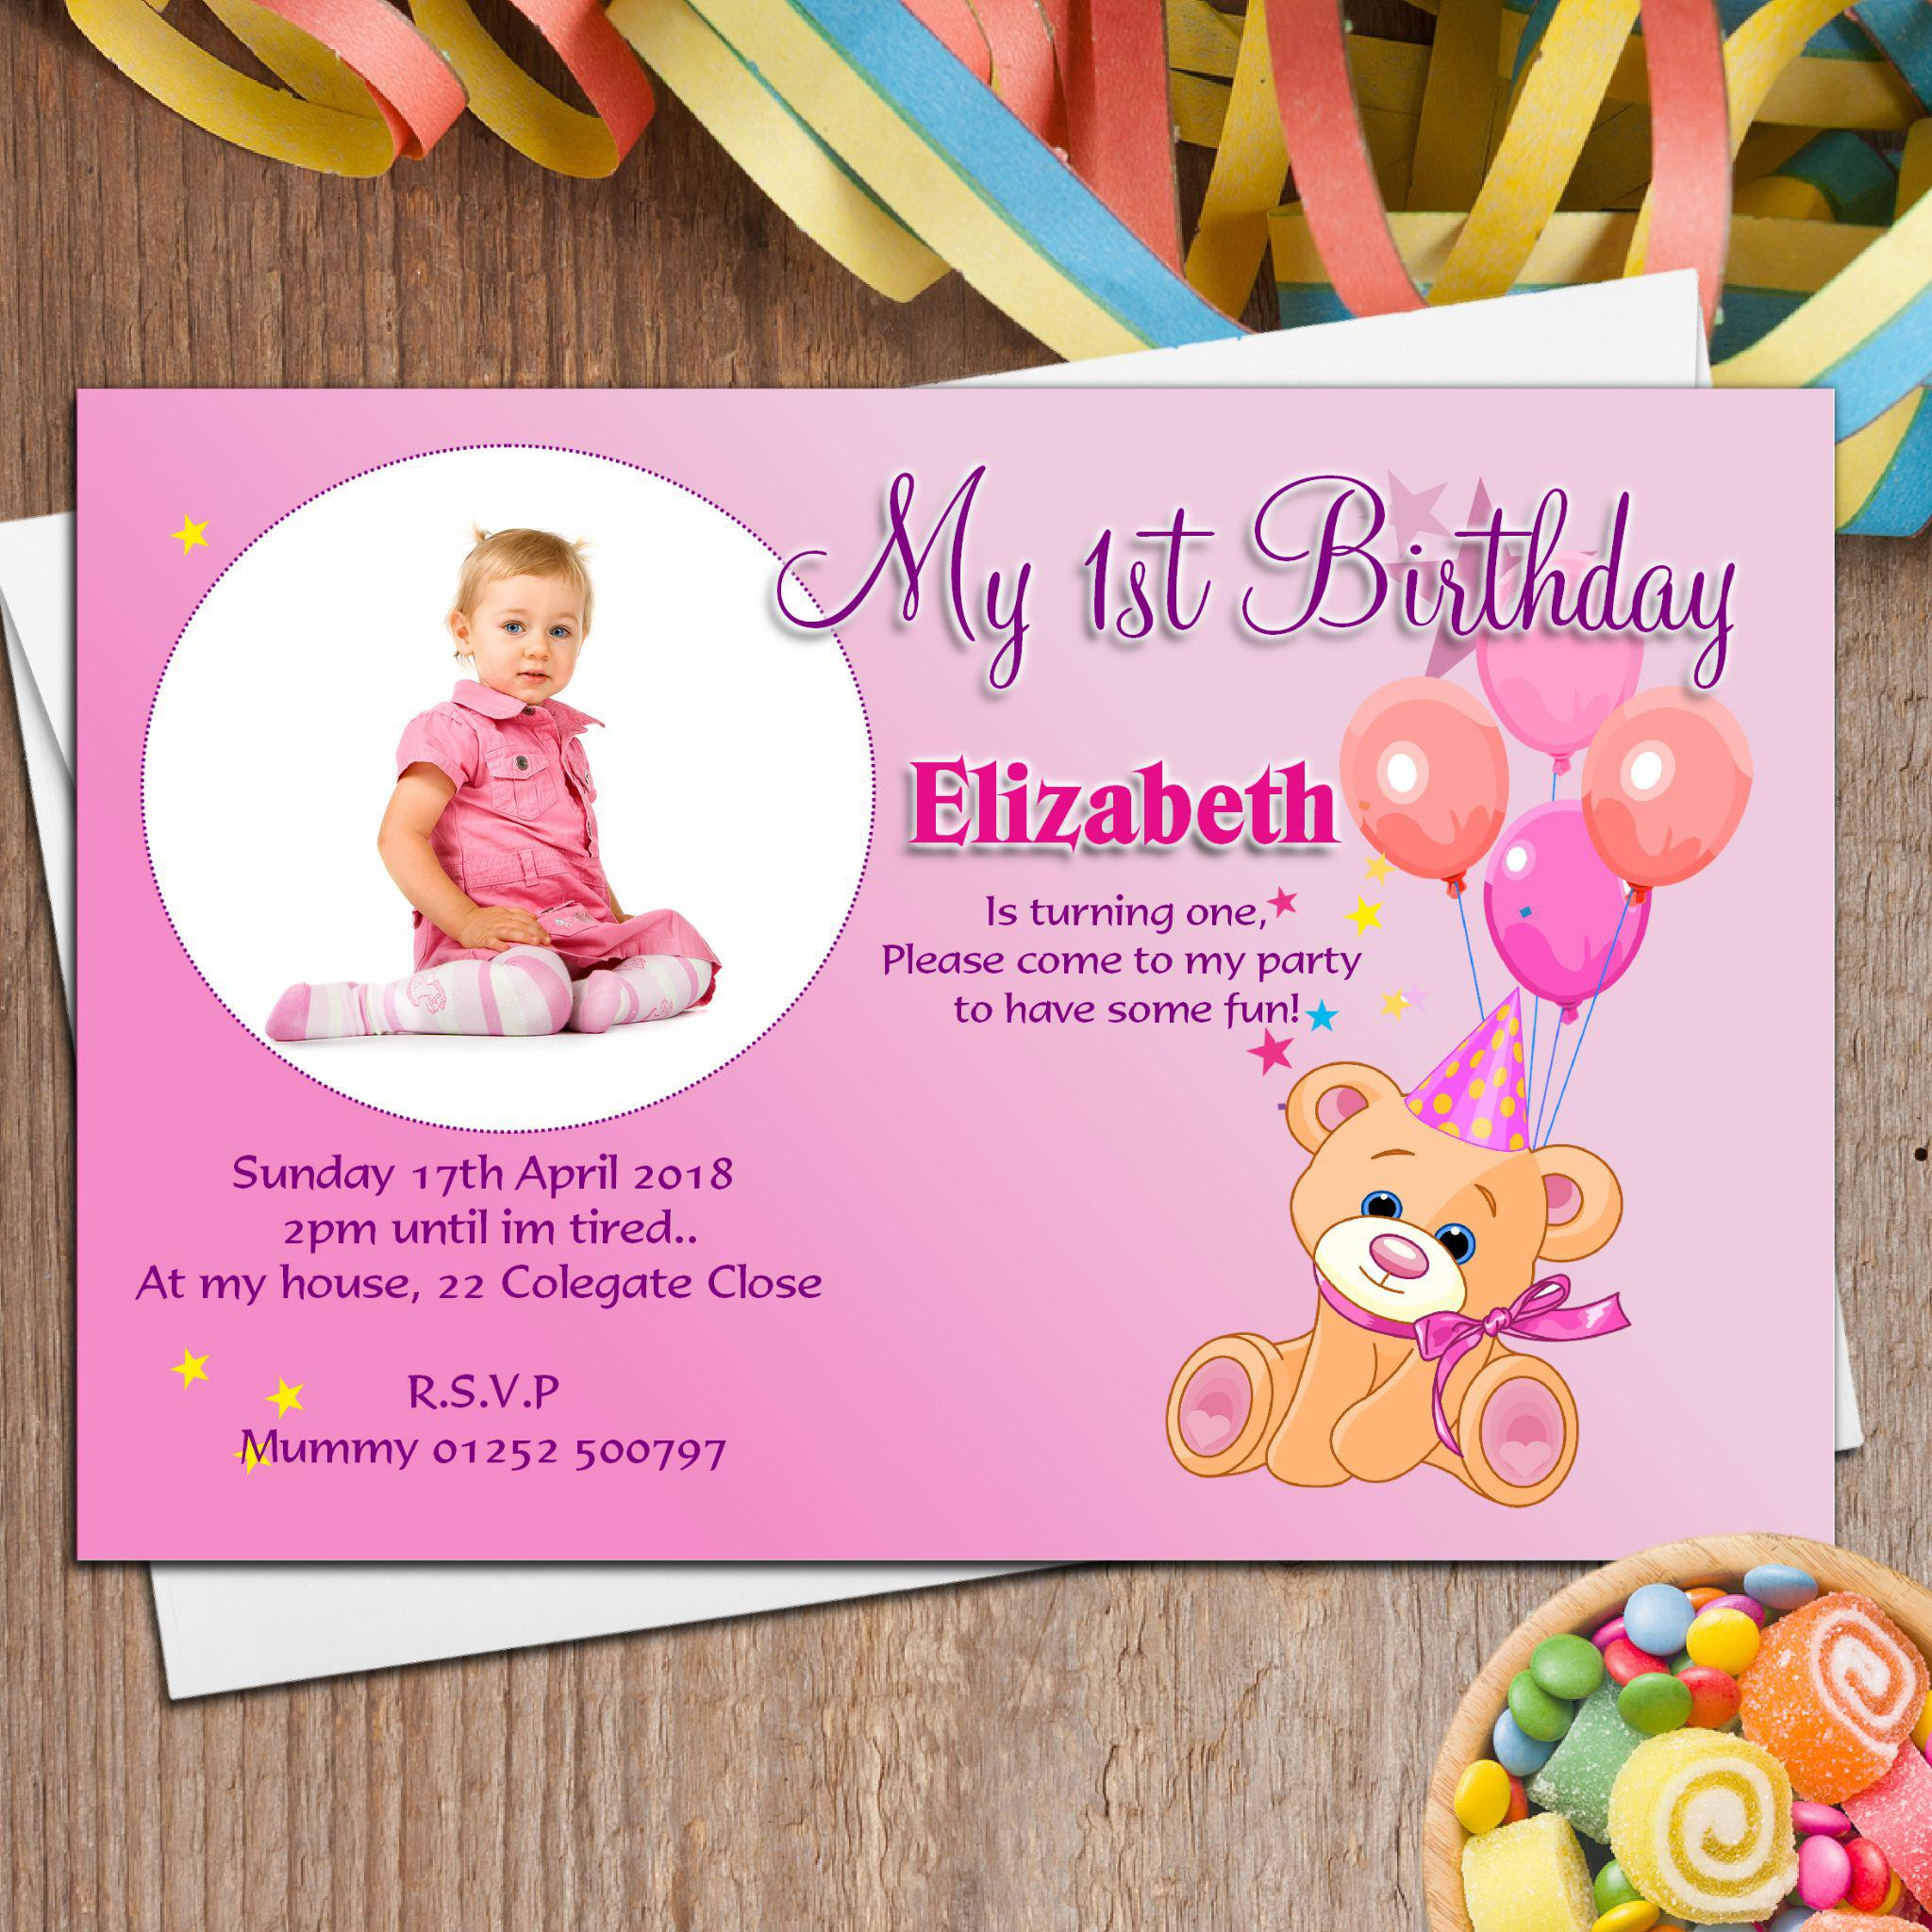 20 birthday invitations cards sample wording printable birthday invitation cards personalized teddy party for girl stopboris